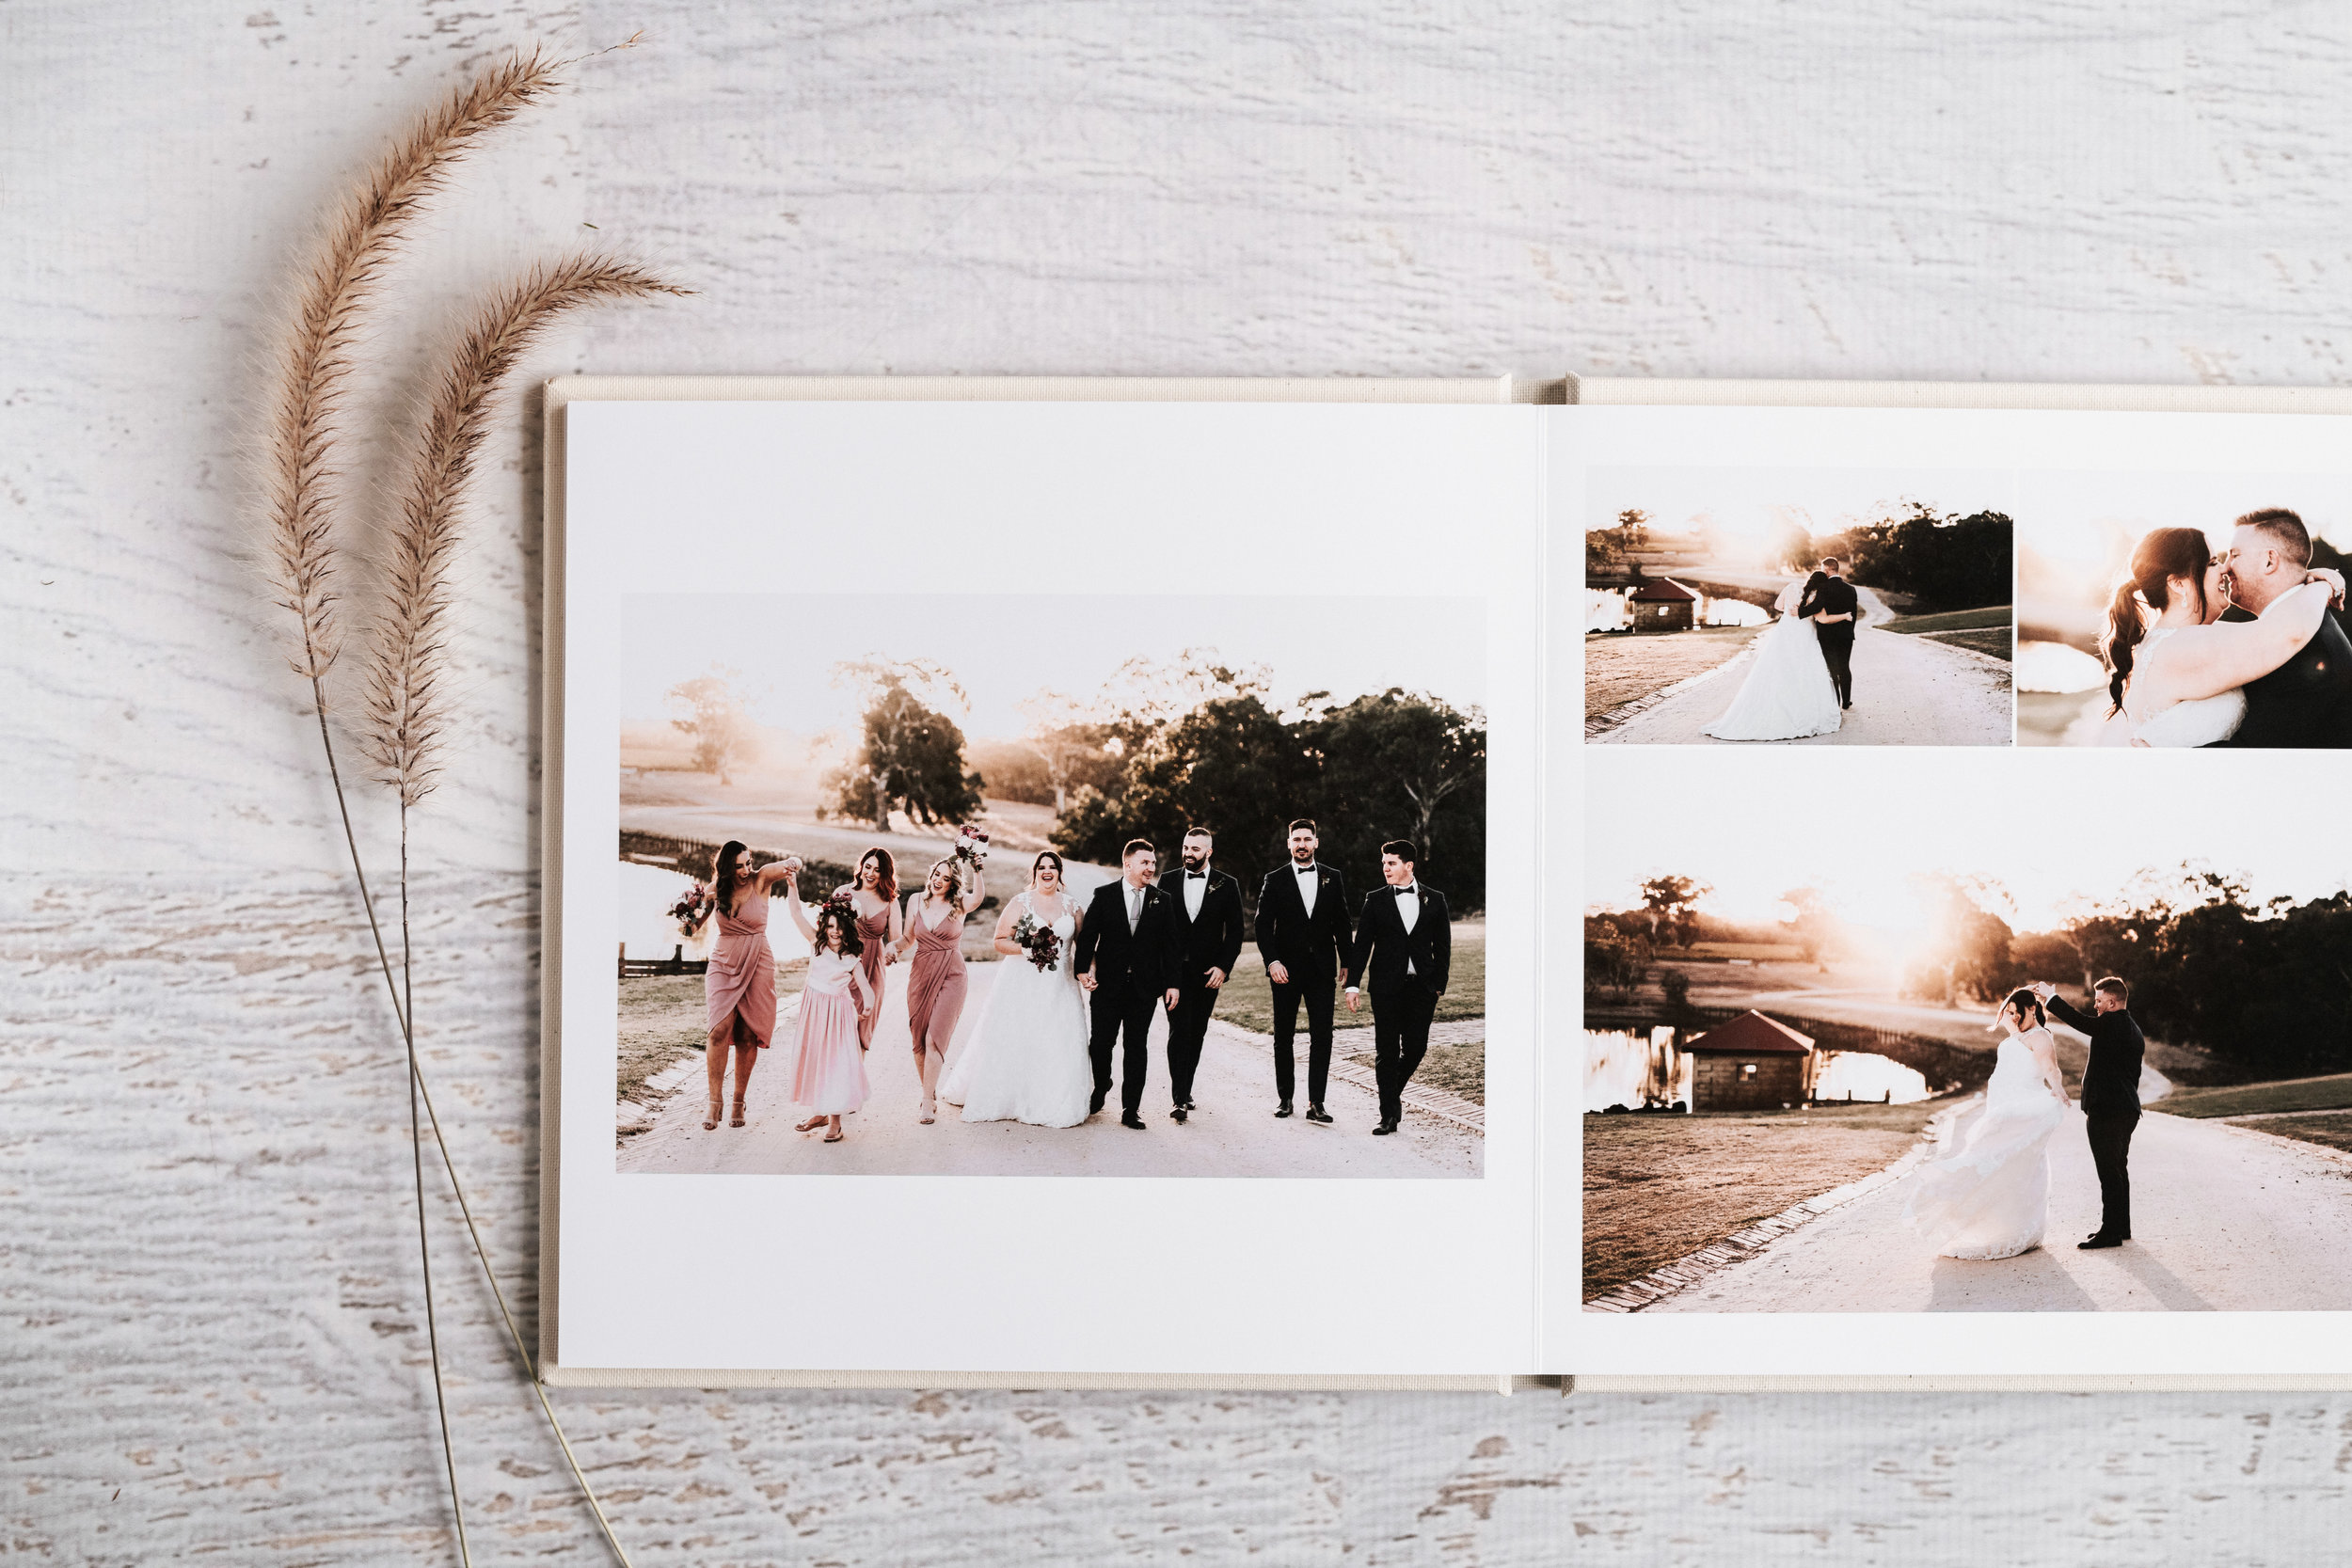 Beautifully binded with sturdy and professionally printed pages